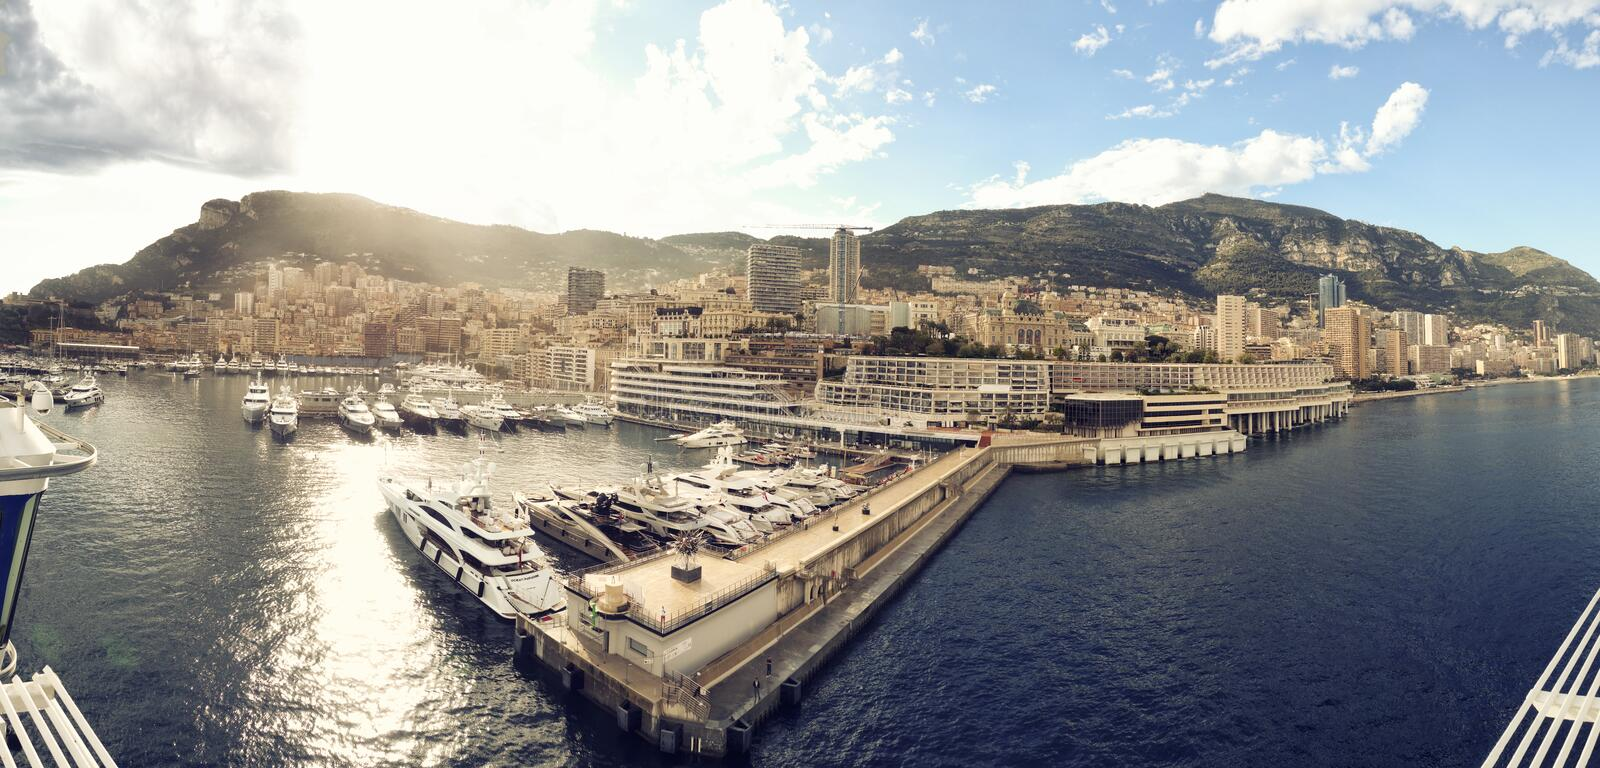 Panoramic photograph of principality of Monaco. Panoramic photograph of principality of Monte Carlo yacht port stock photos